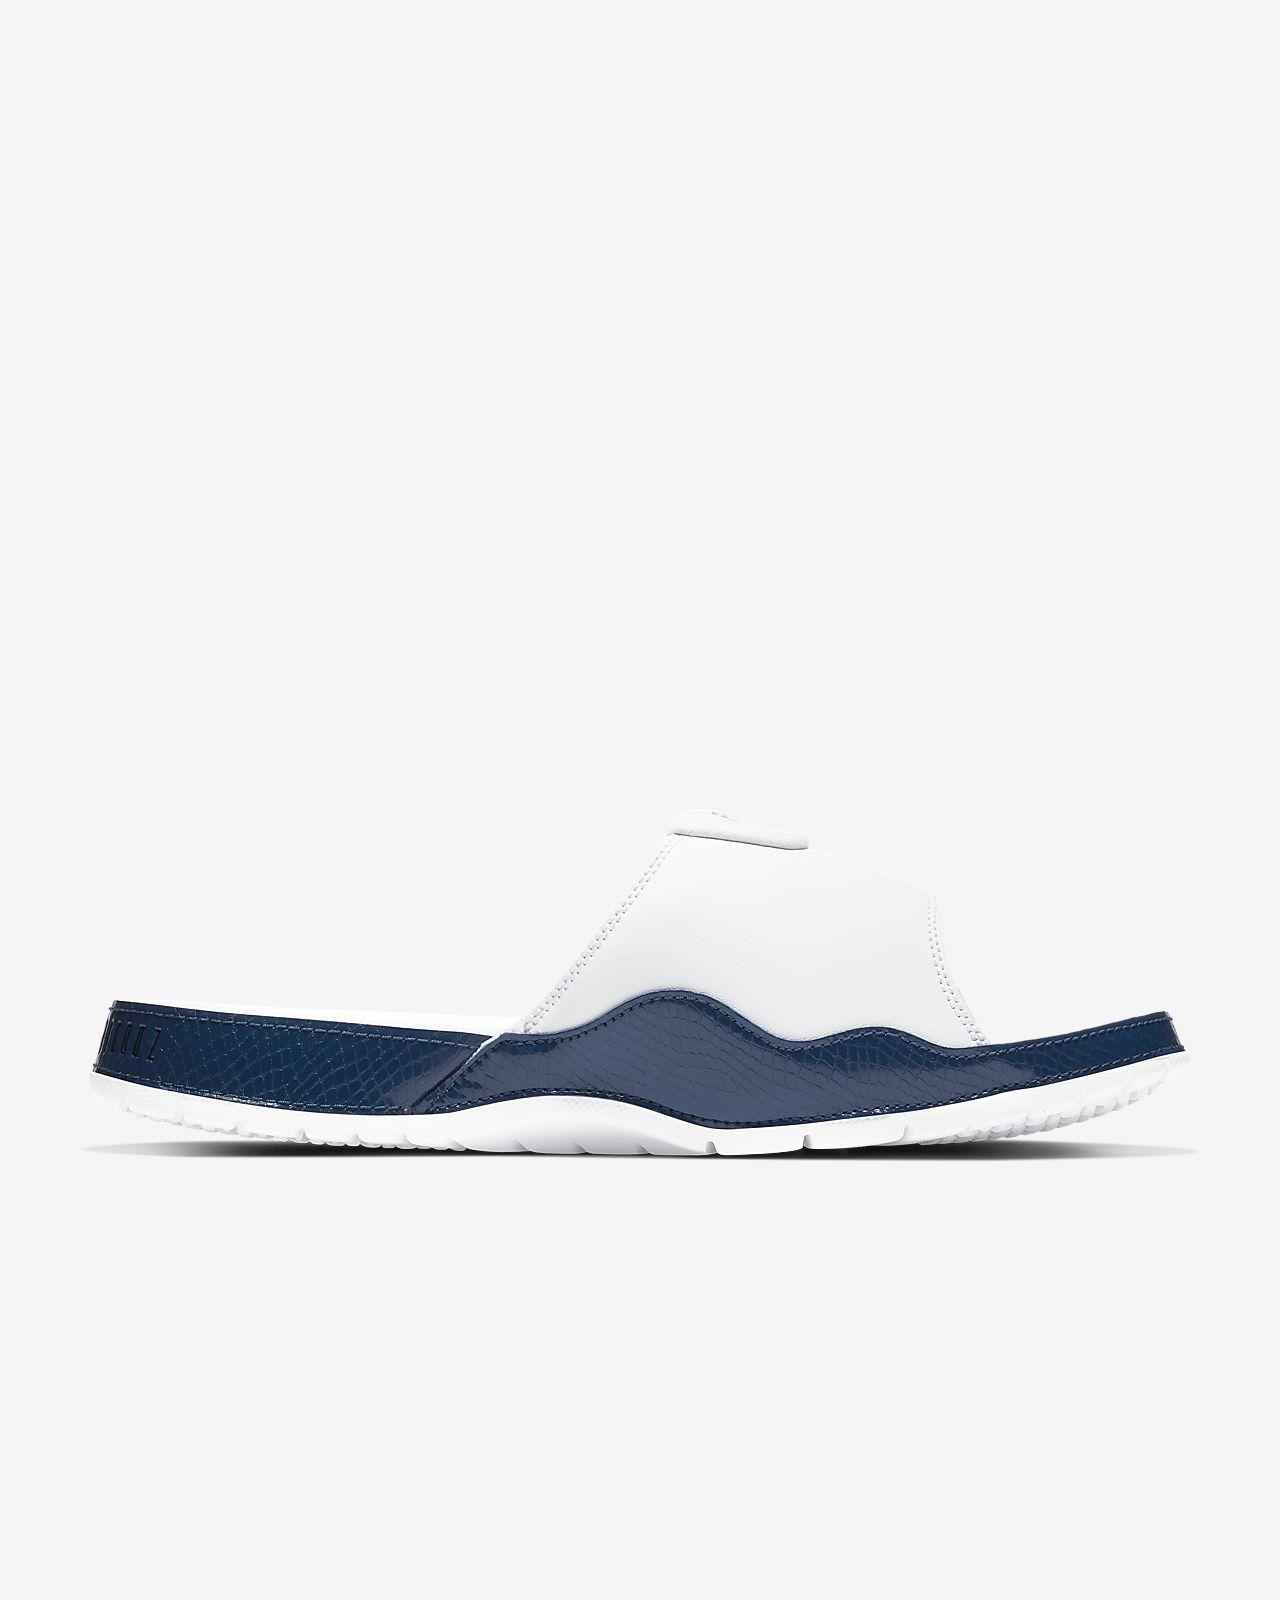 new style 39865 9f498 ... Jordan Hydro XI Retro Men s Slide